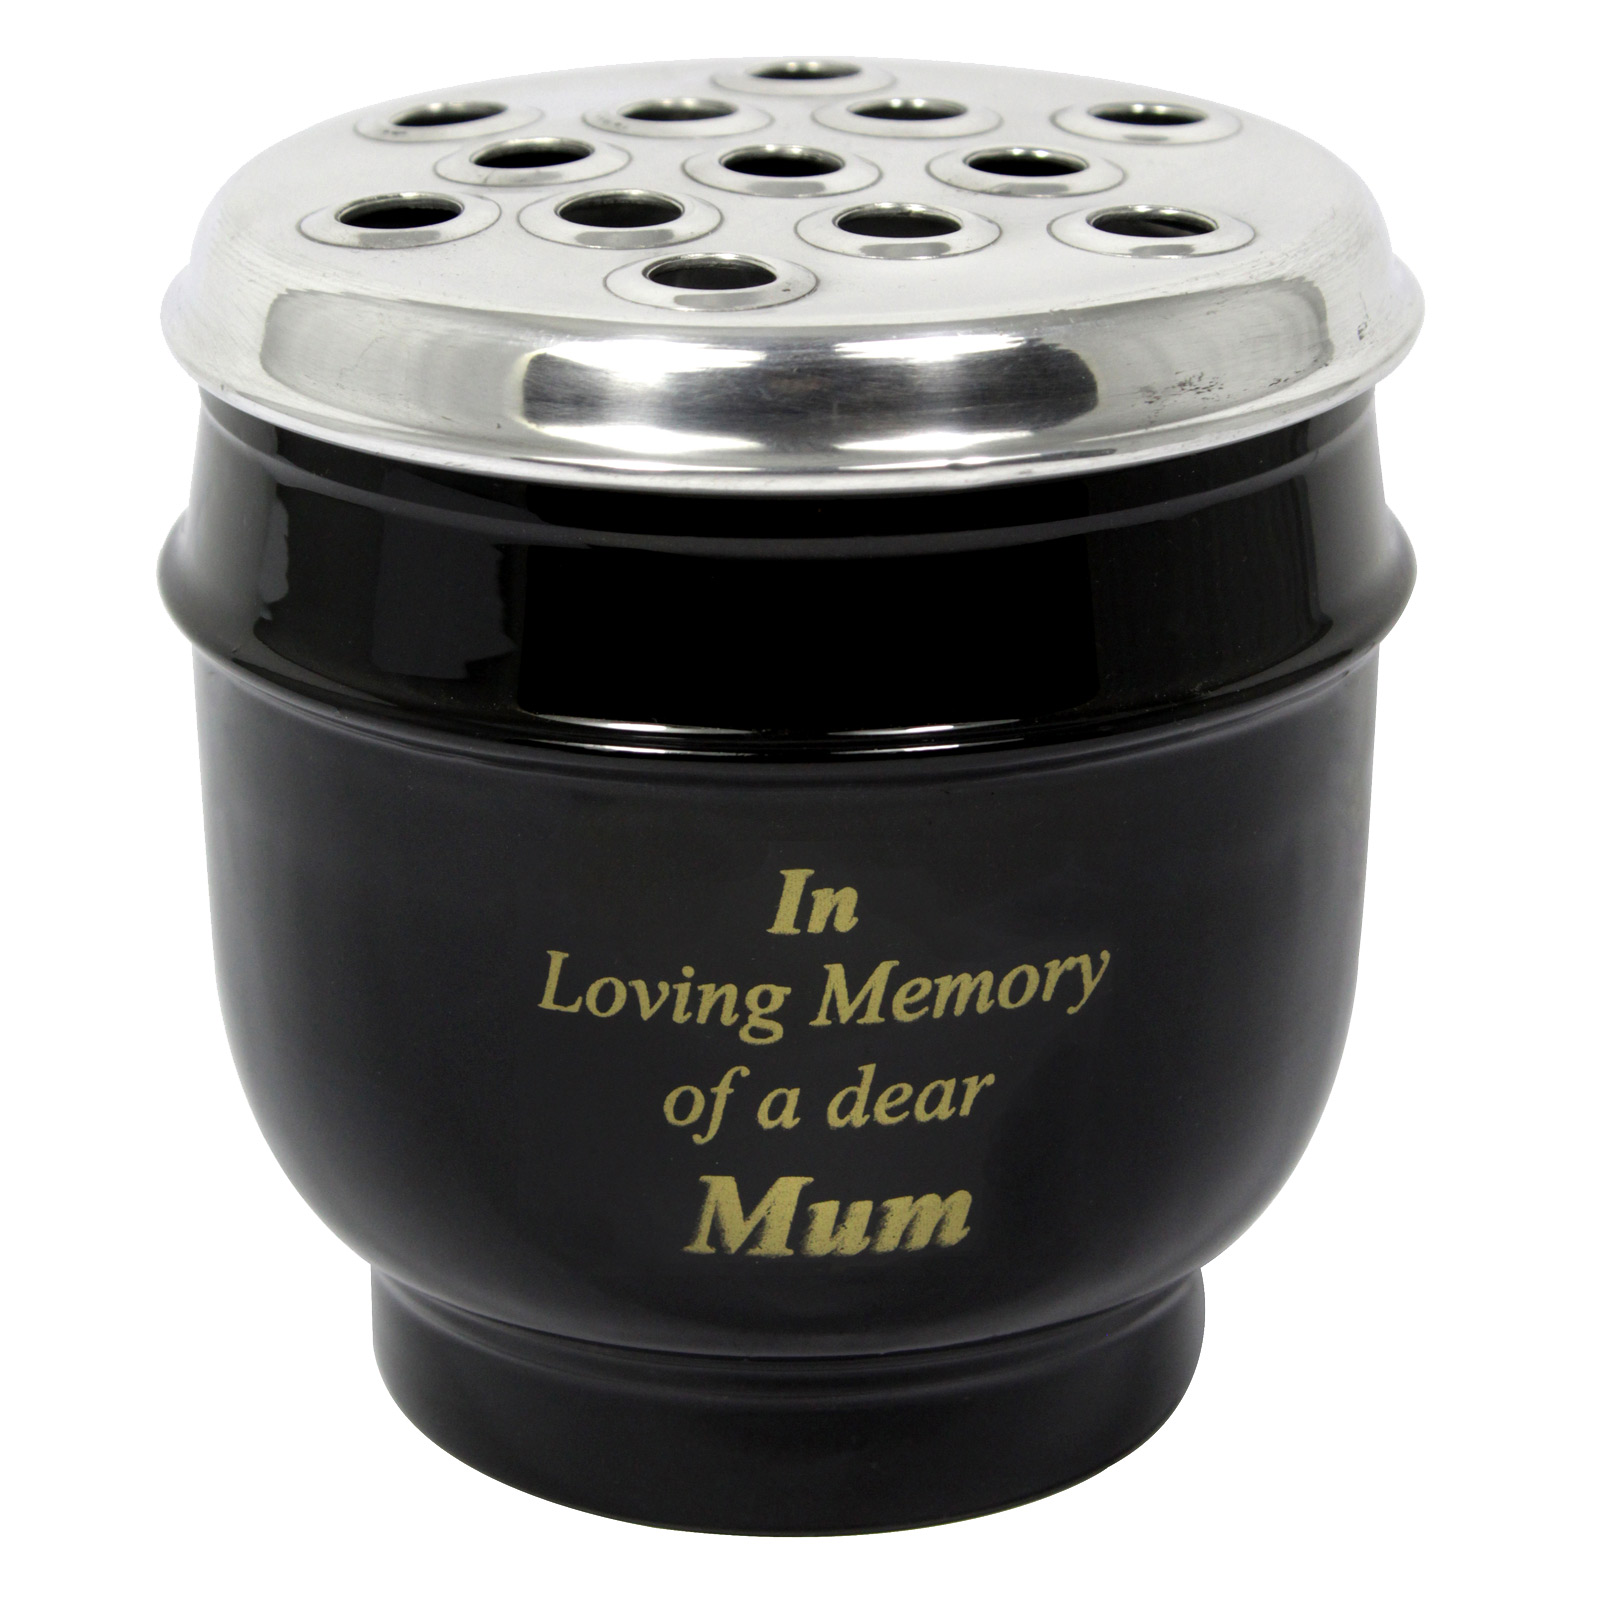 METAL GRAVE VASE BLACK WITH SILVER LID IN LOVING MEMORY OF A DEAR MUM 14CM